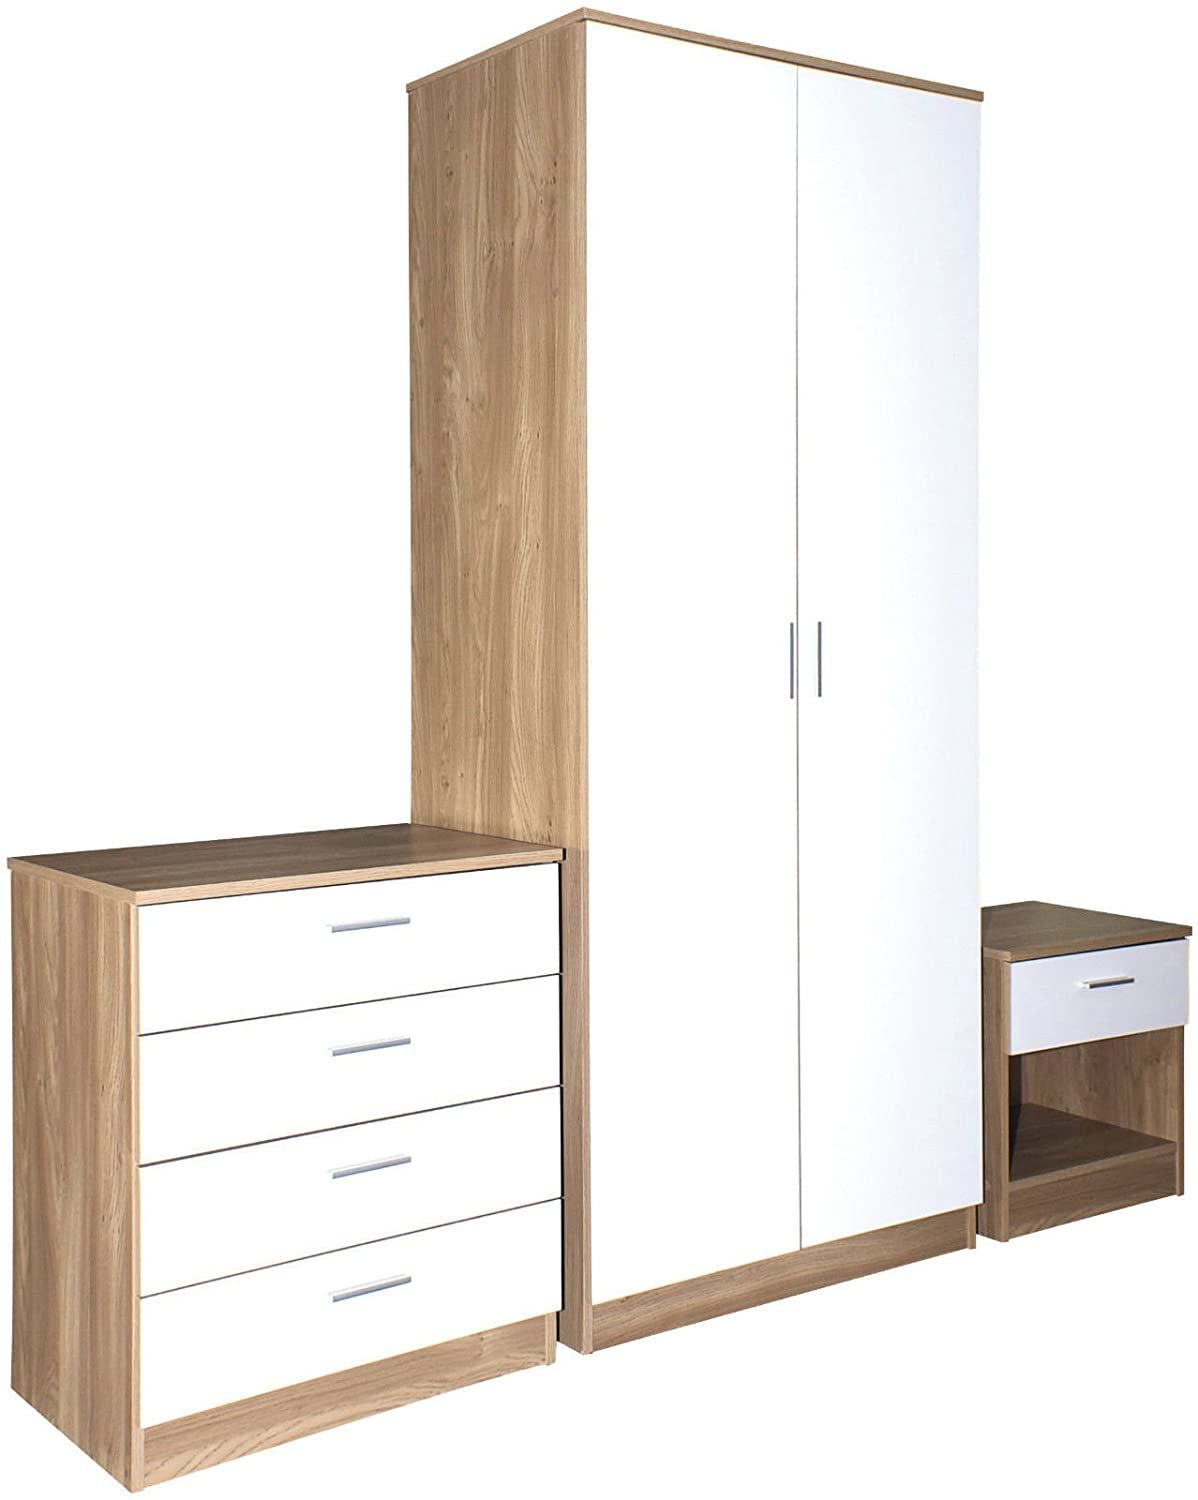 Trio White High Gloss   Oak Frame 3 Piece Bedroom Furniture Set   Amazon co uk  Kitchen   Home. Trio White High Gloss   Oak Frame 3 Piece Bedroom Furniture Set